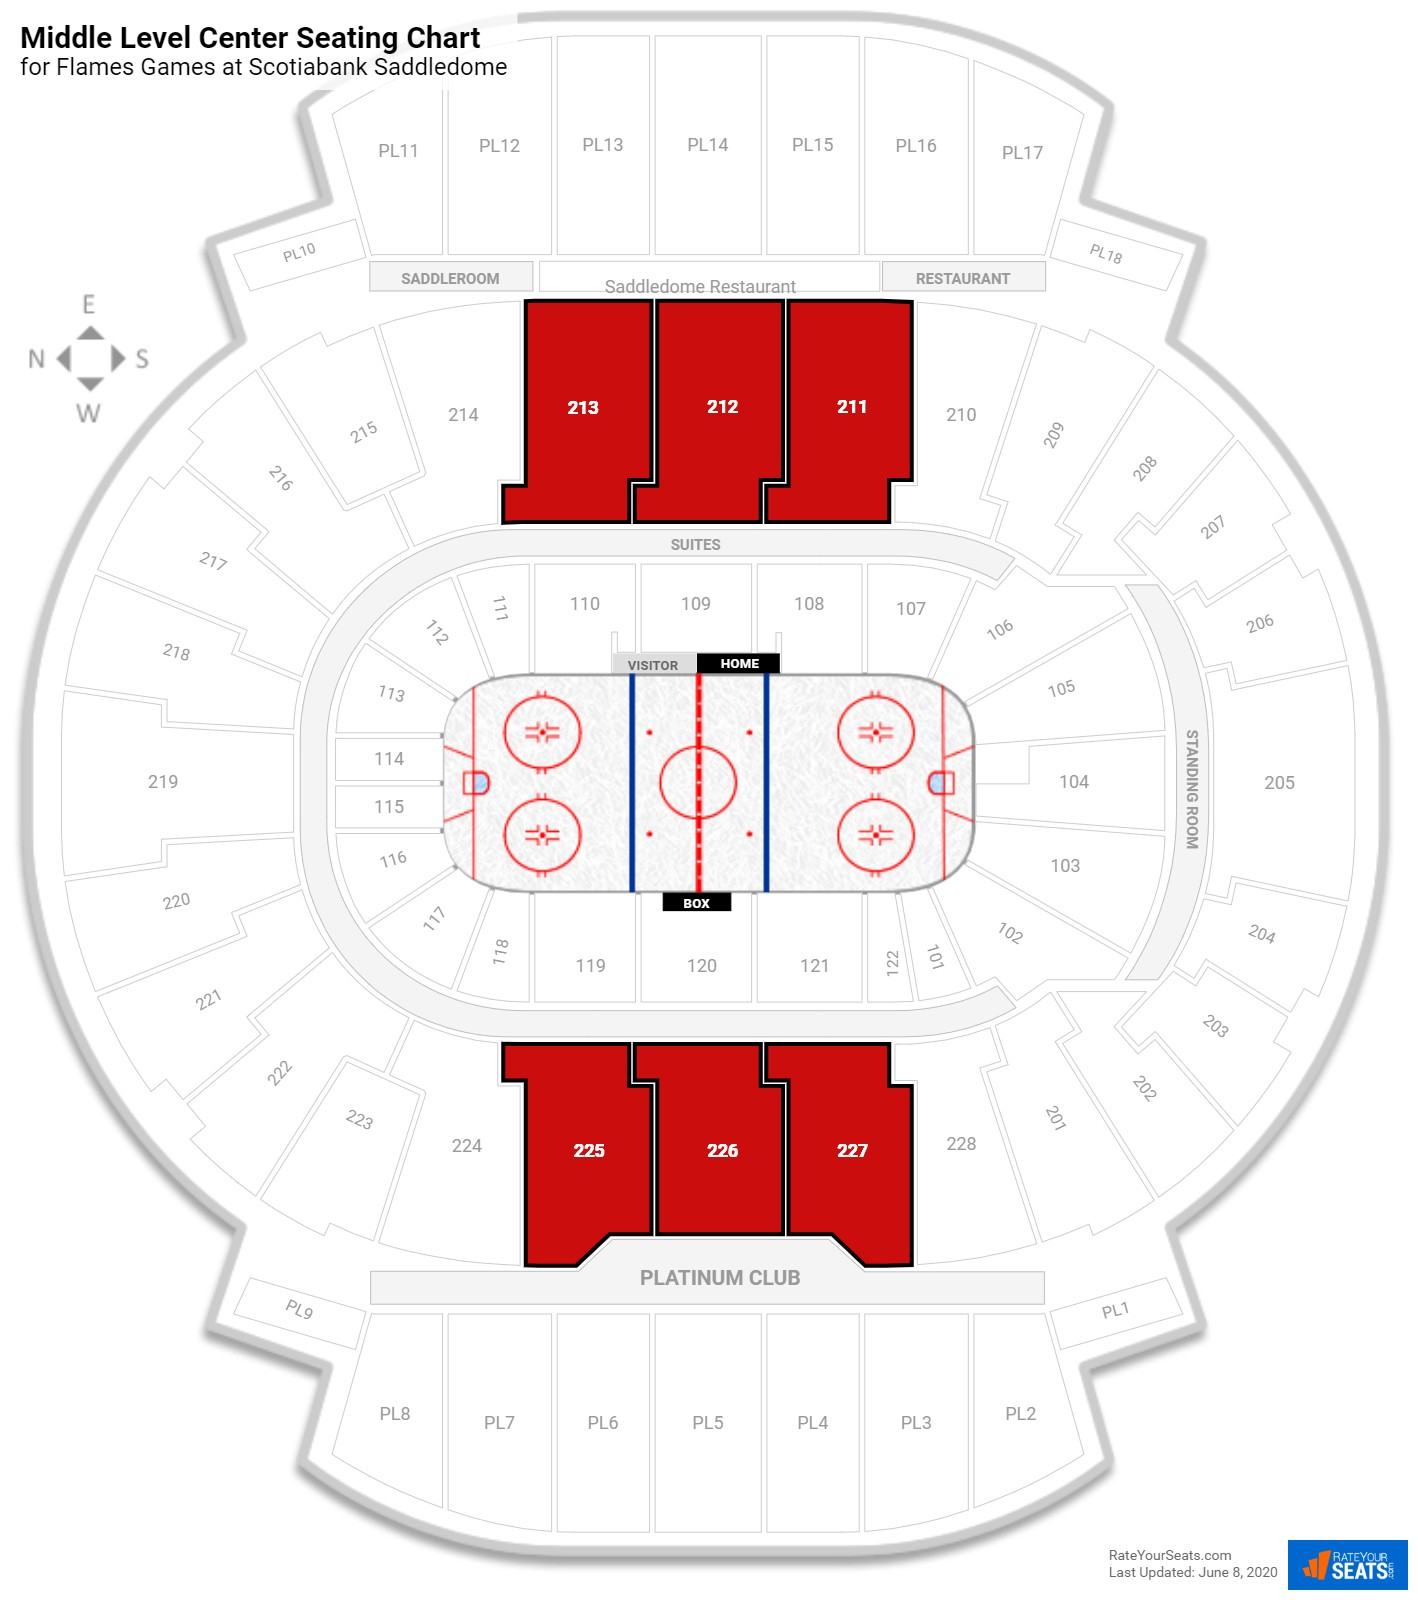 Scotiabank Saddledome Middle Level Center seating chart